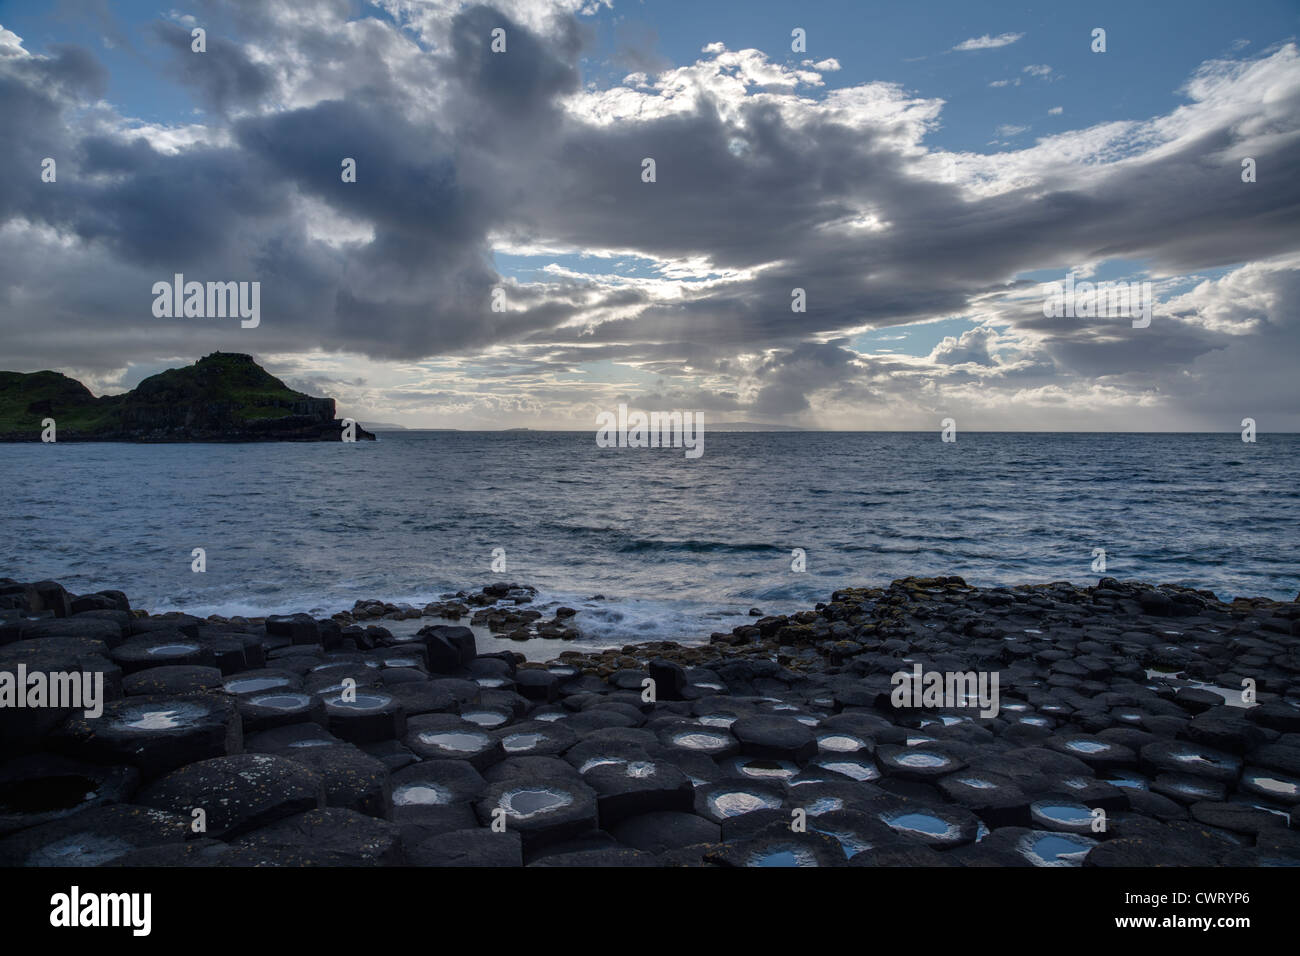 view of Giant's Causeway, County Antrim, Northern Ireland - Stock Image